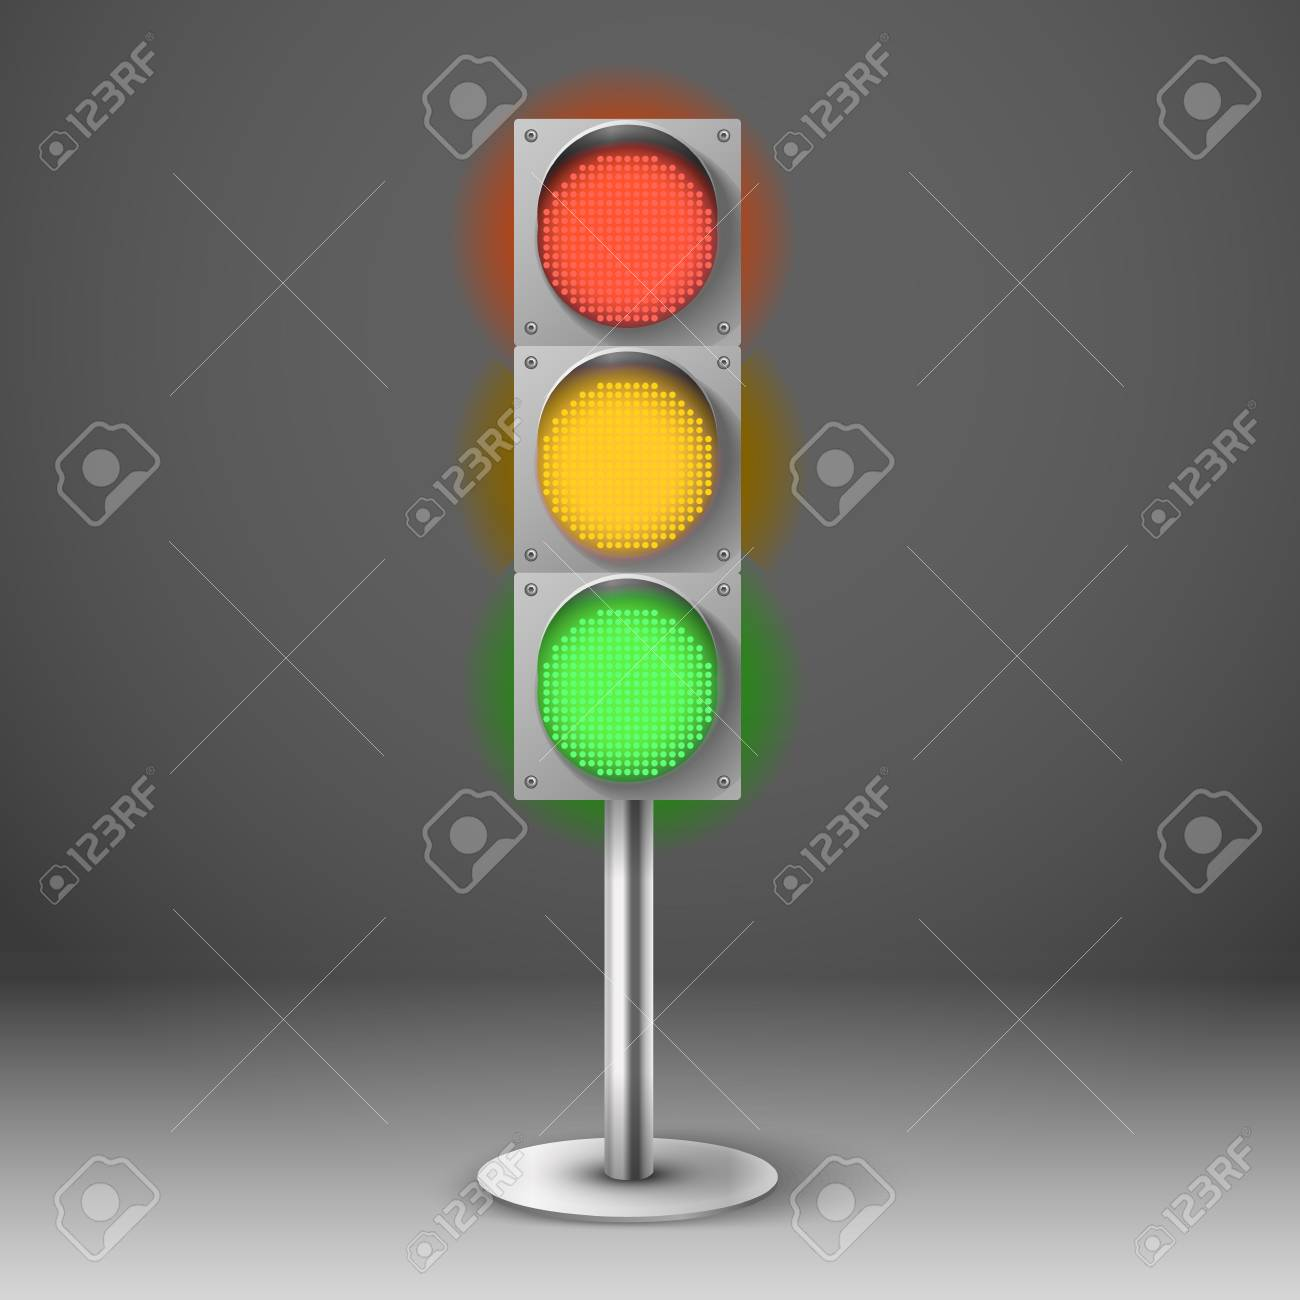 traffic light vector illustration red yellow and green diod